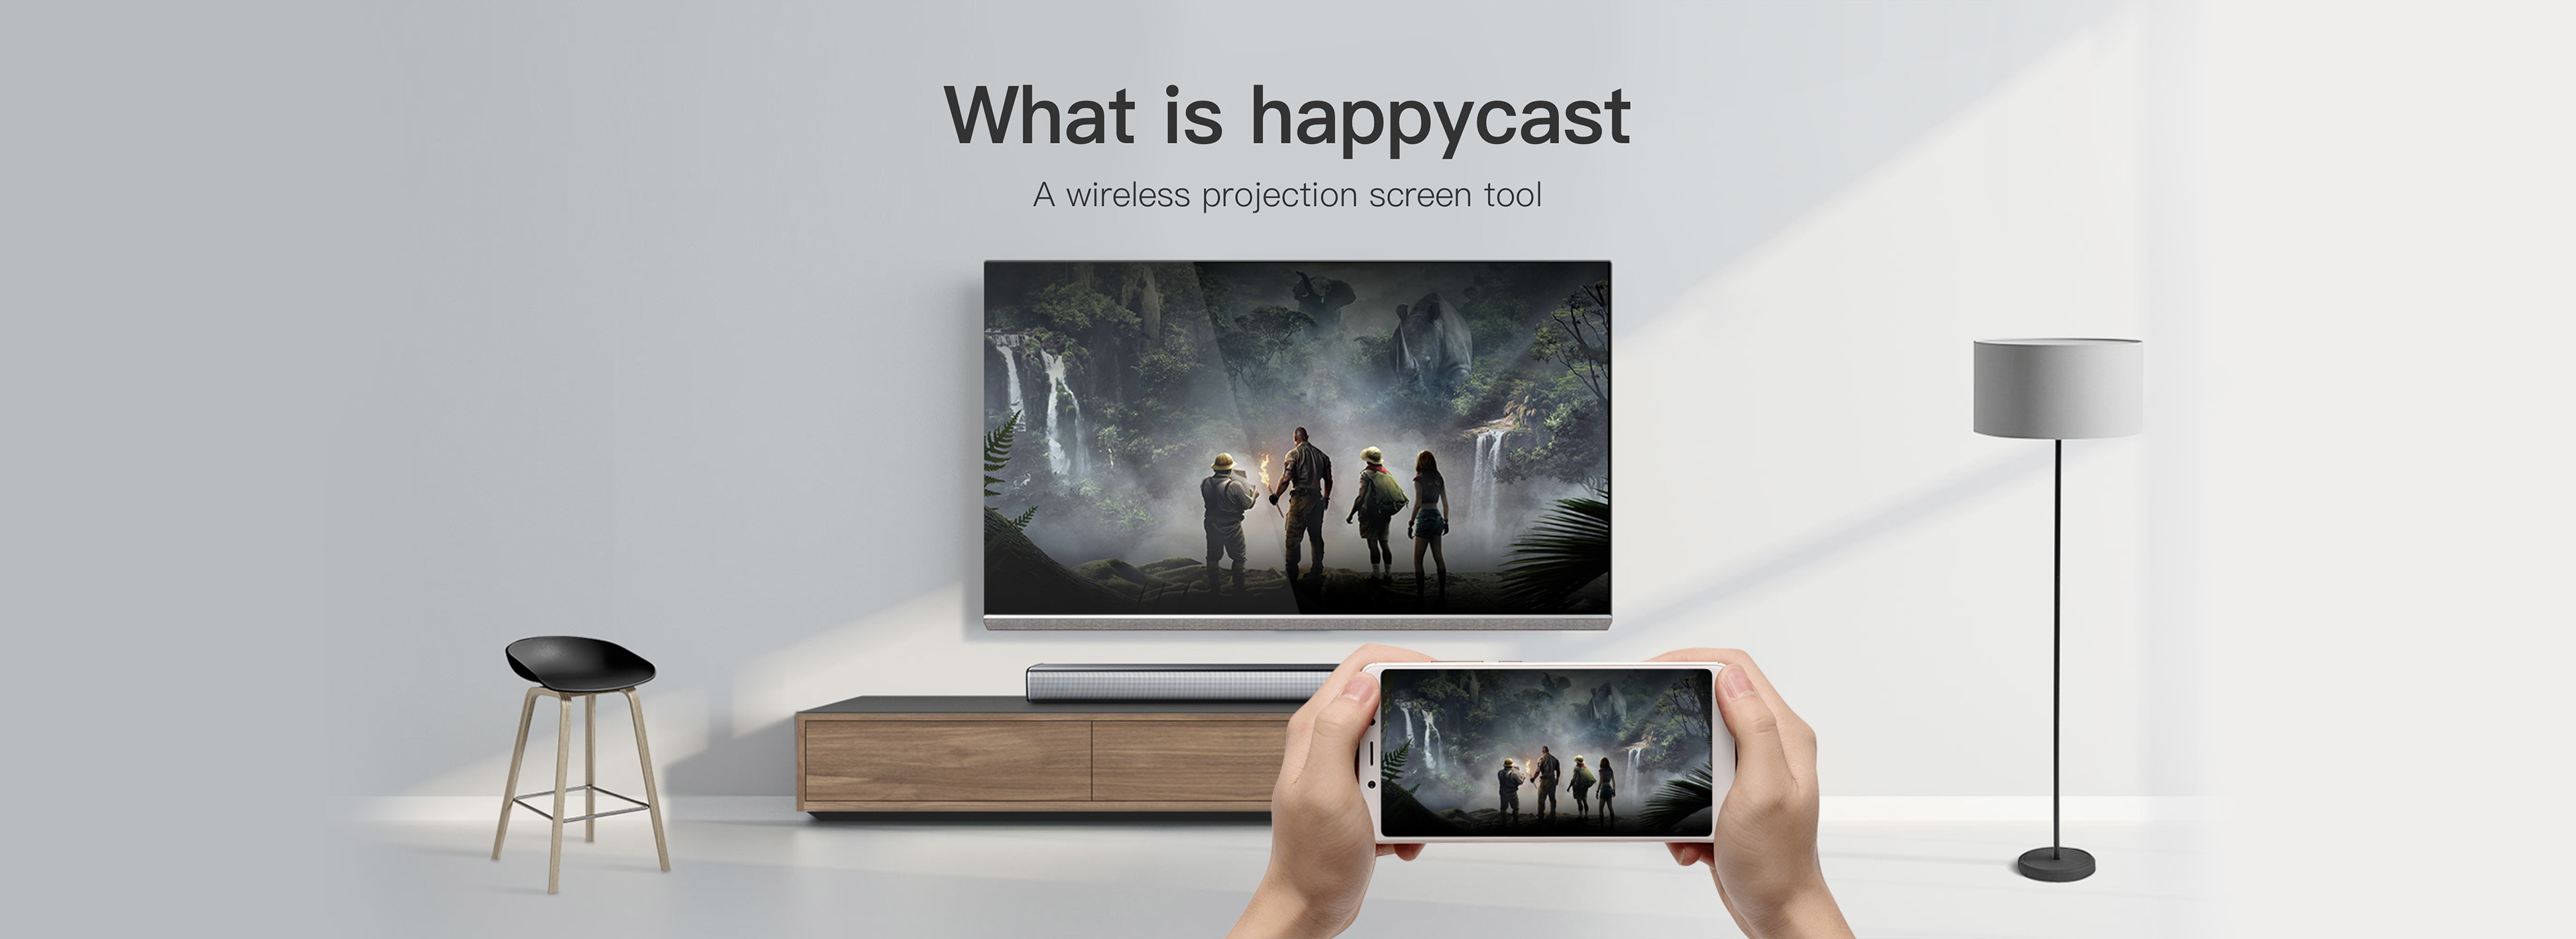 What is HappyCast? What is the screen mirroring tool? Introduction to HappyCast. How to use HappyCast? With just one click, you can connect HappyCast to the screen.